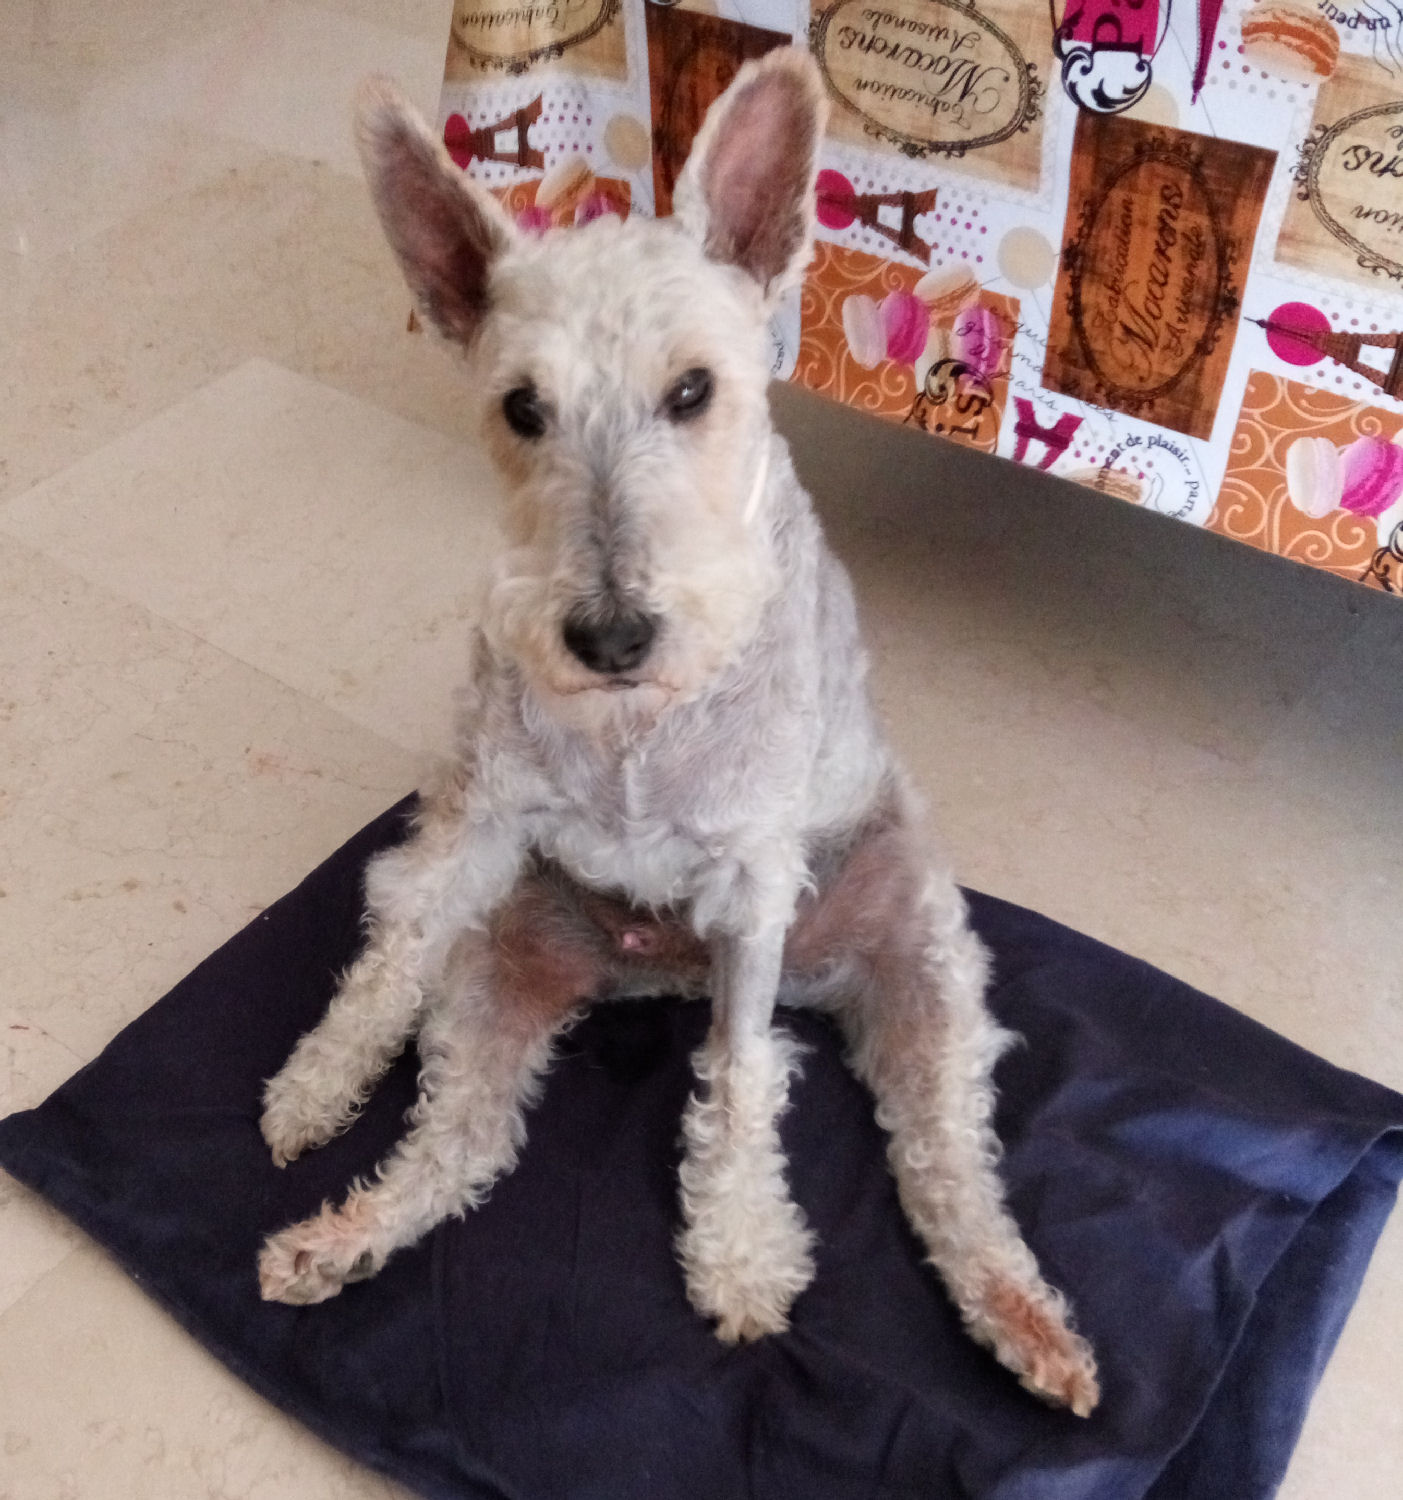 will fox terrier 28 junio 04